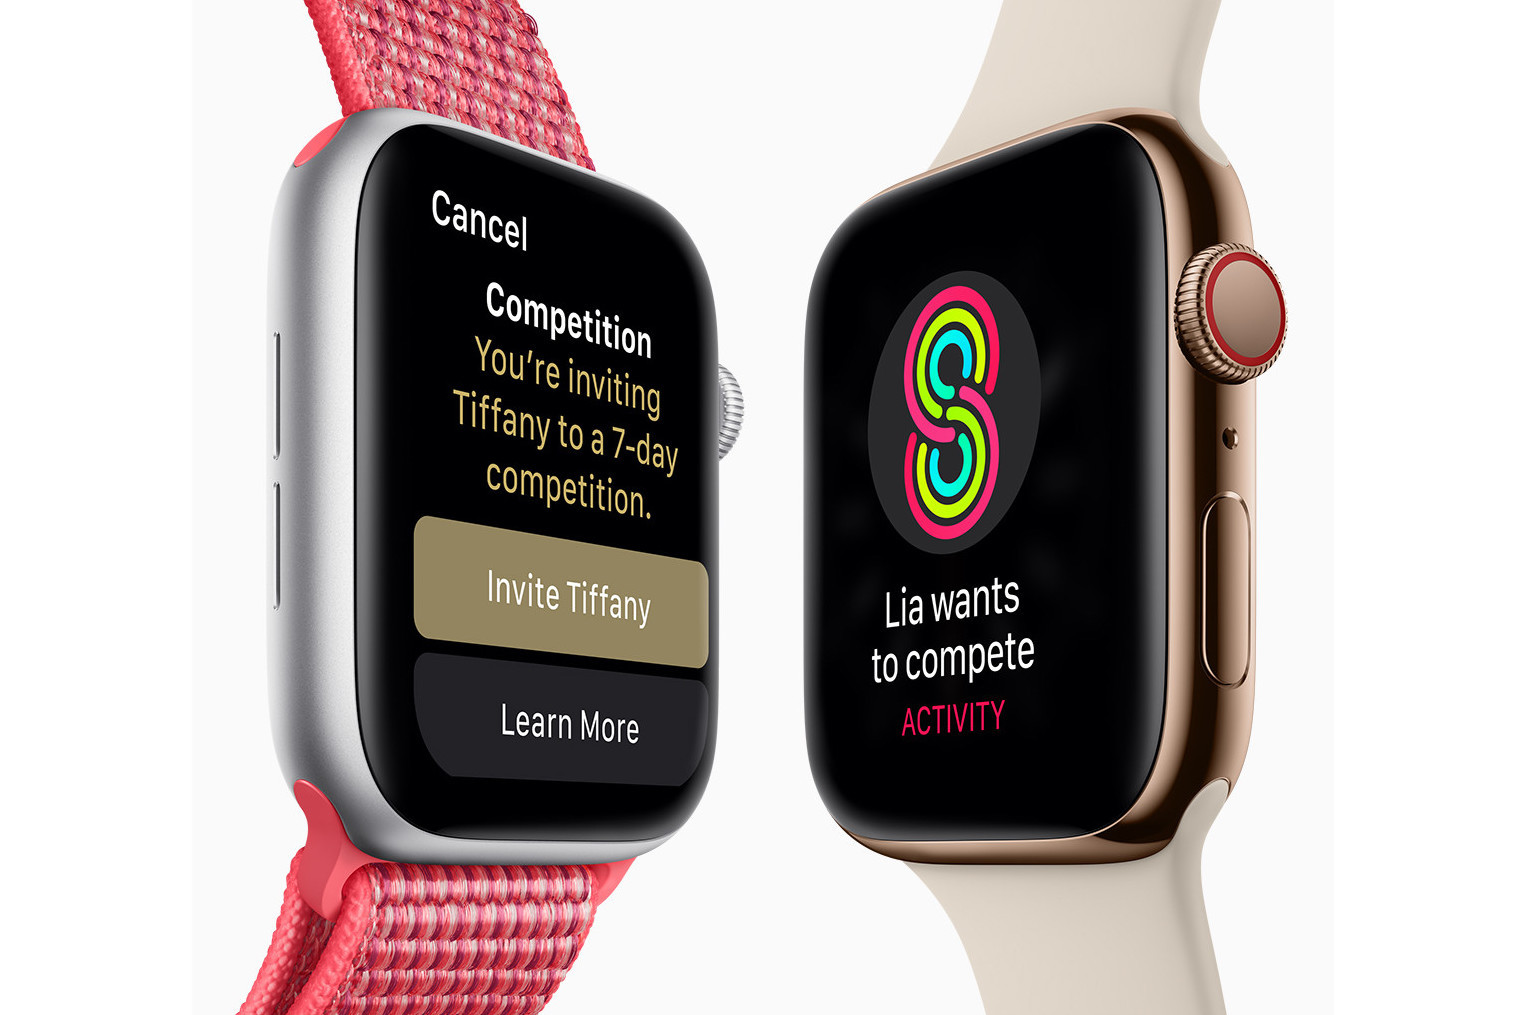 The Apple Watch Series 4 in Australia underwent a cyclical